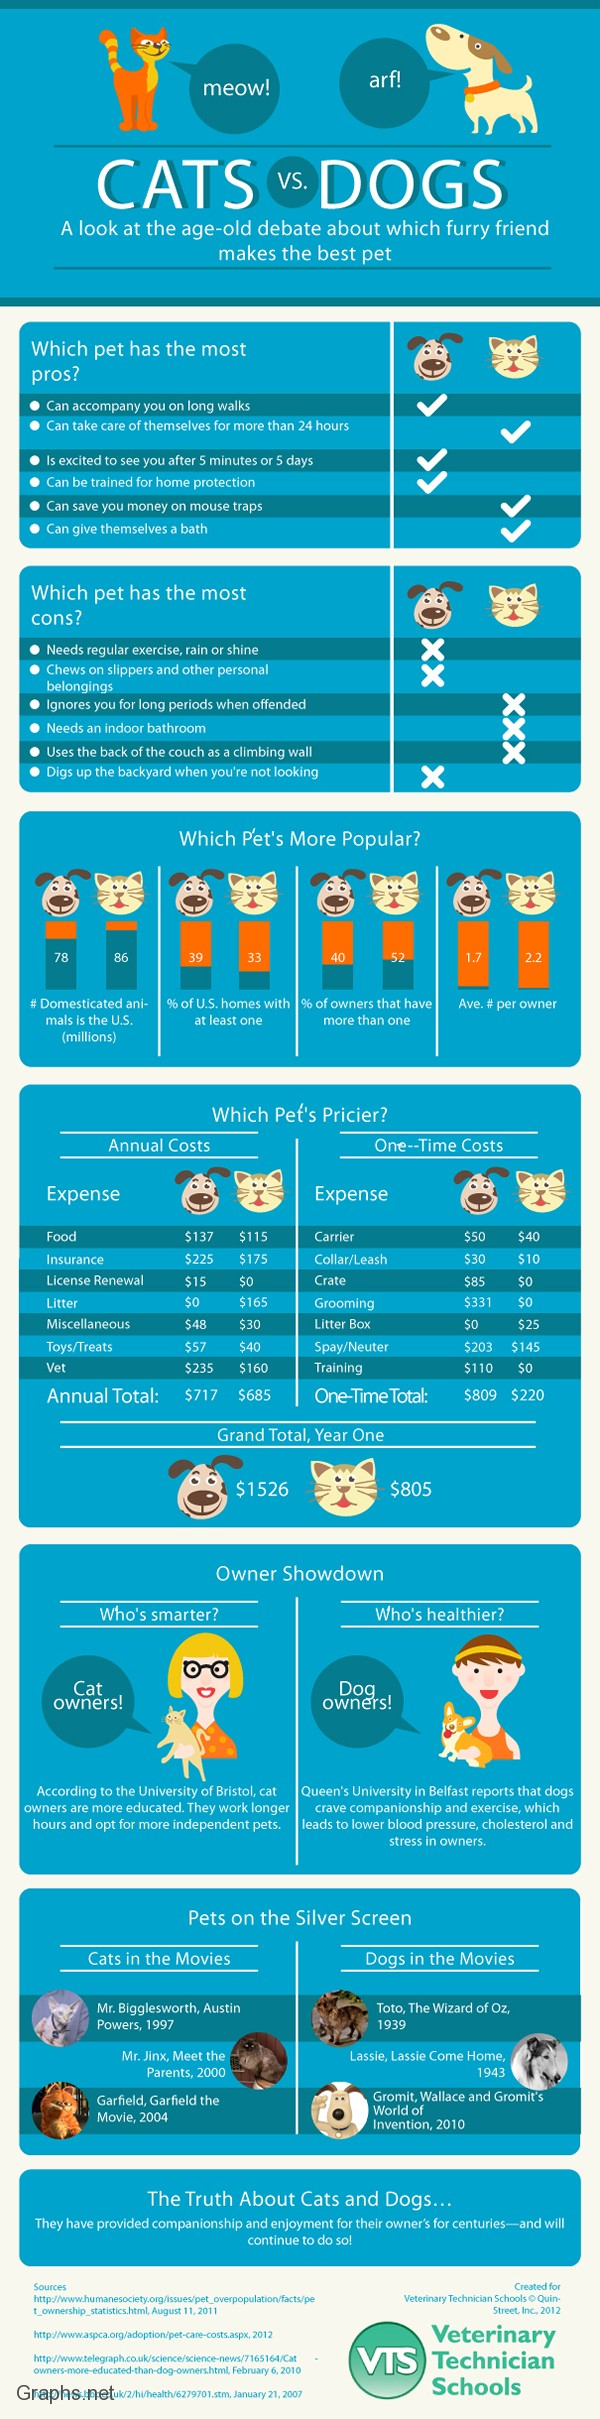 Cats or Dogs- Better Pet